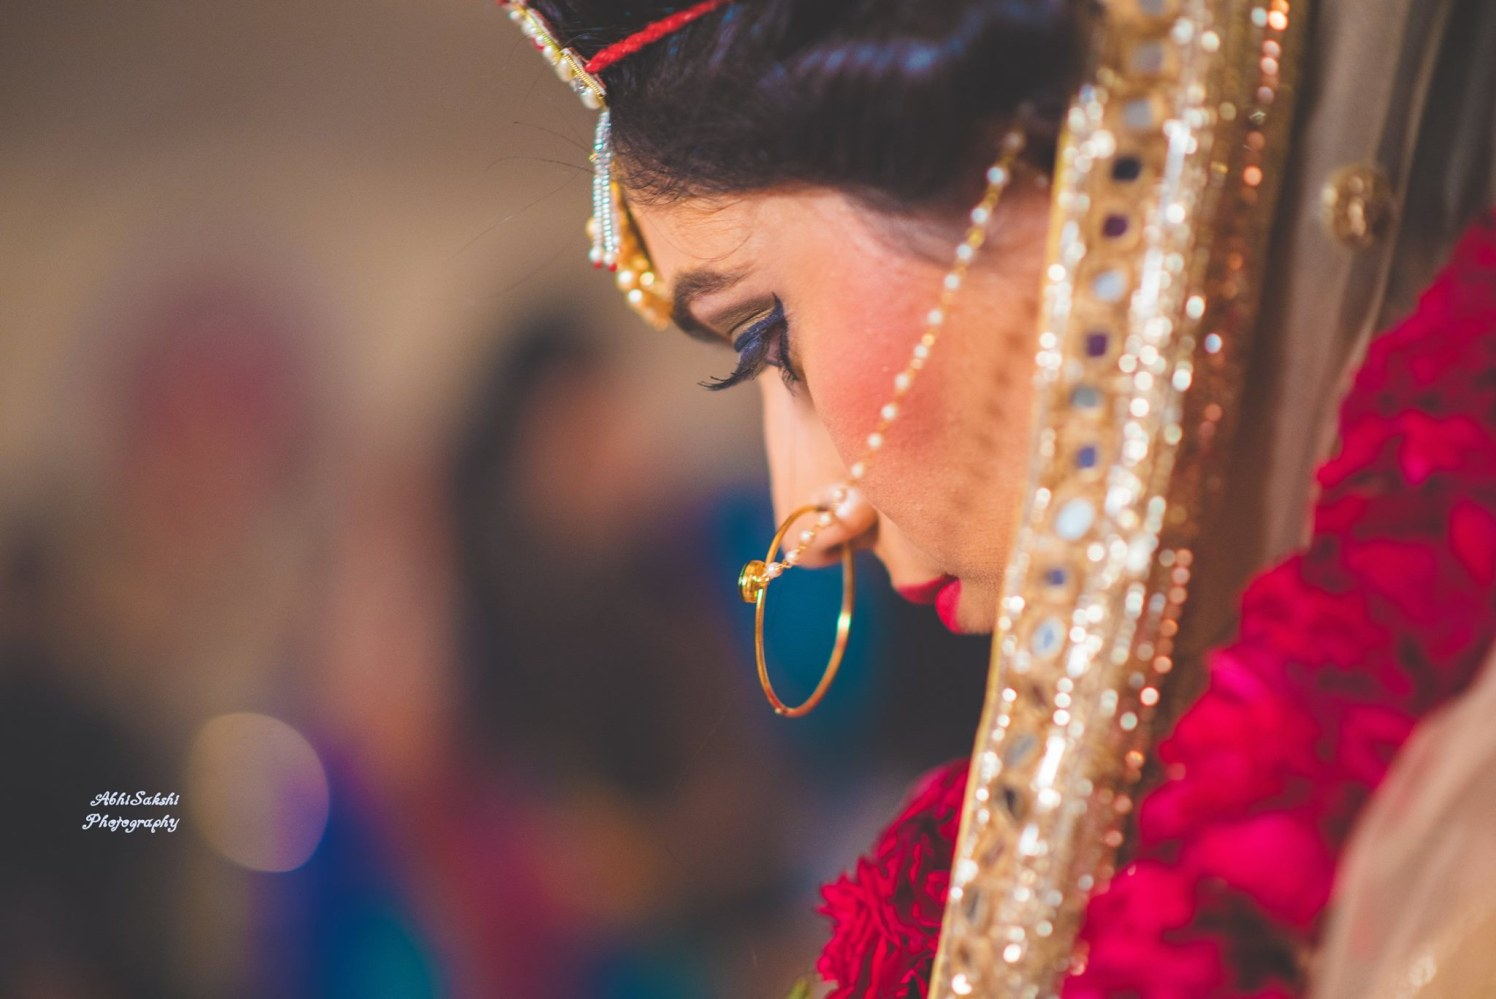 Bridal Side shot by AbhiSakshi Photography Wedding-photography | Weddings Photos & Ideas